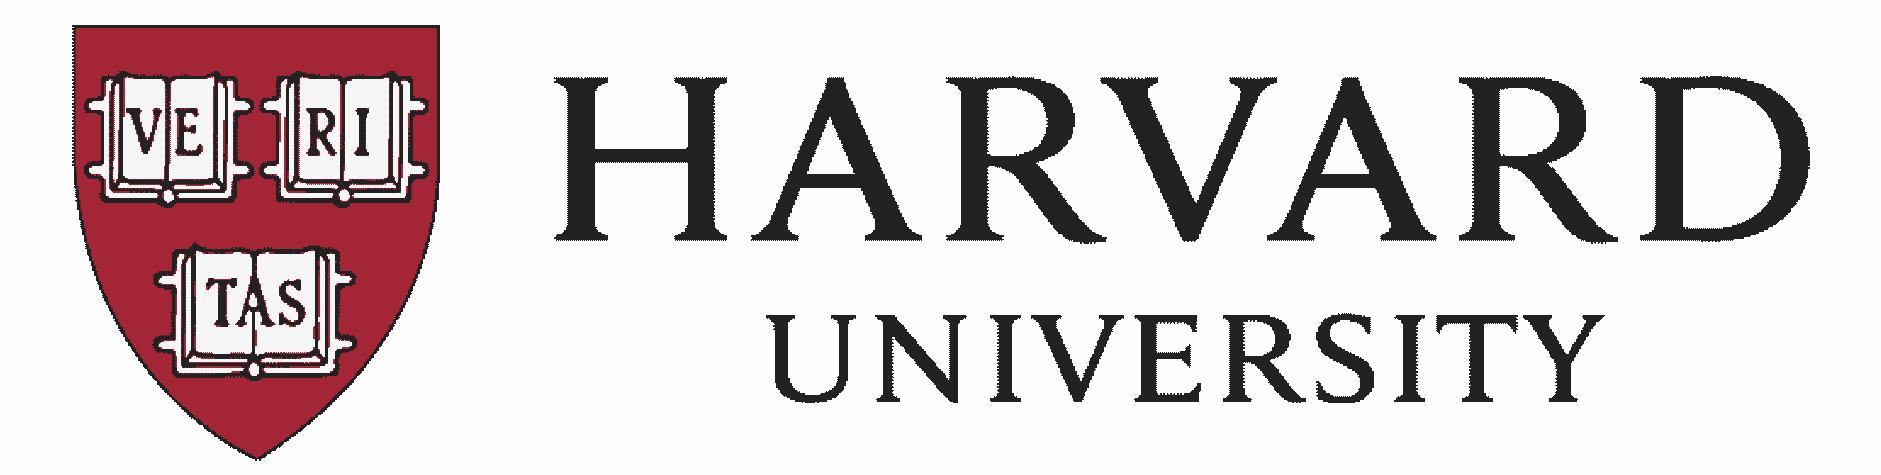 Harvard uses ConferenceBadge.com to create name badges for their events